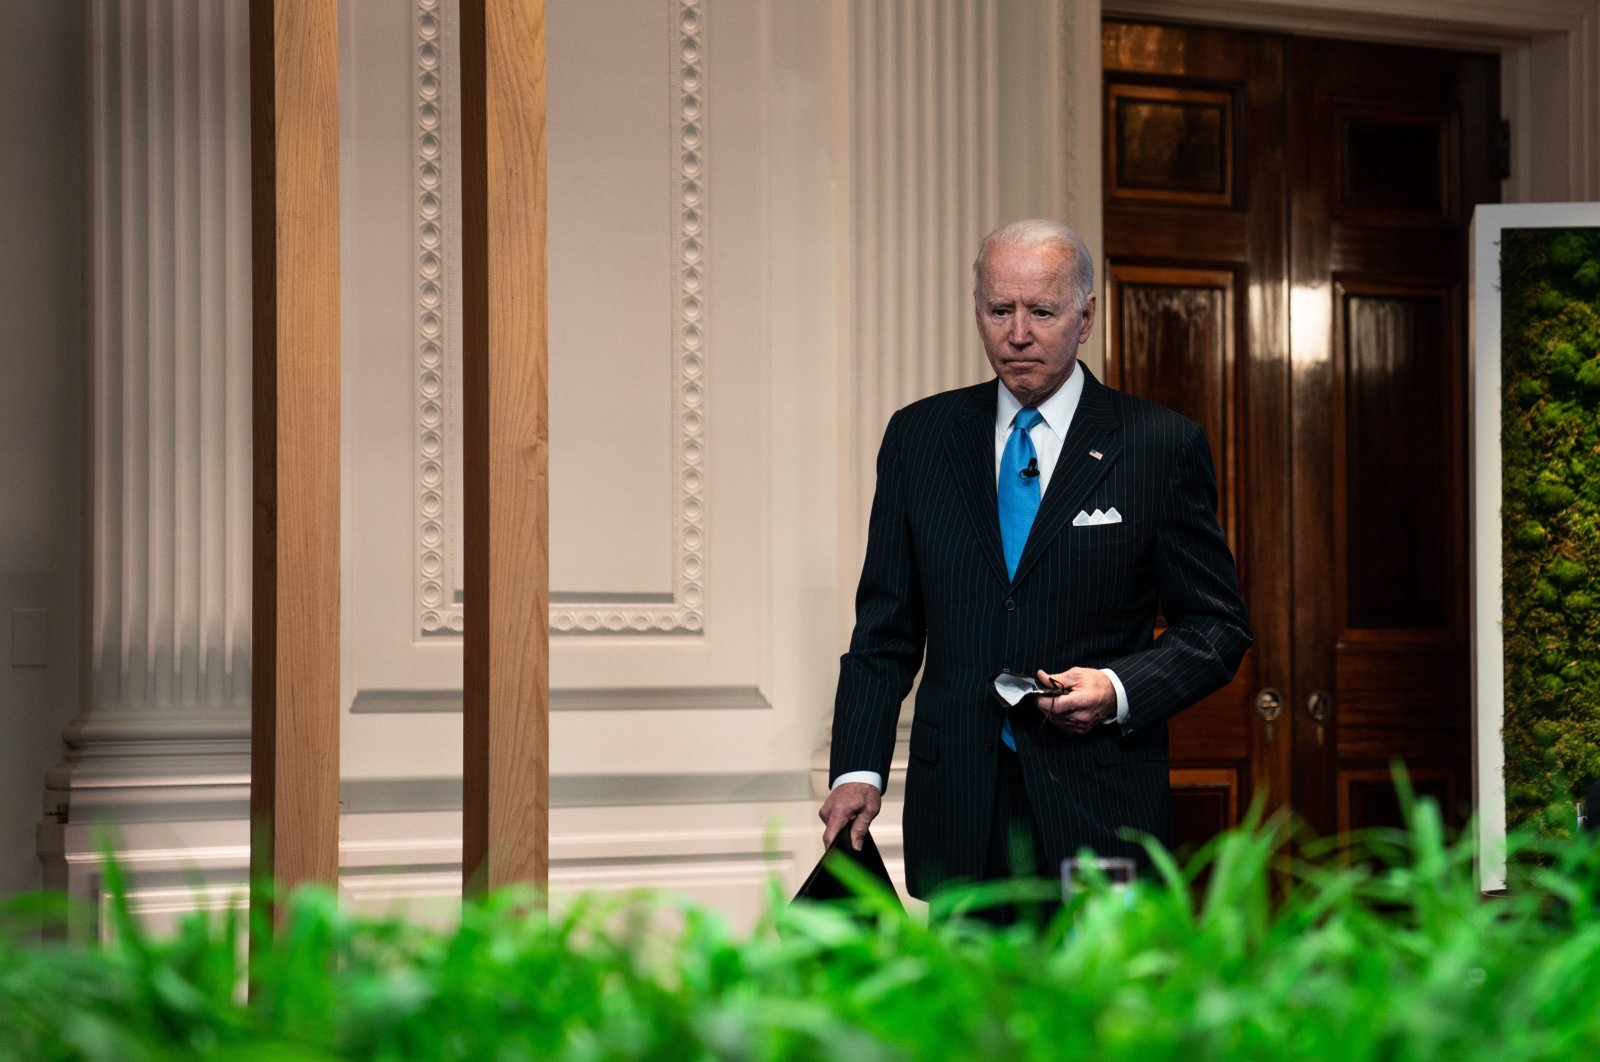 U.S. President Joe Biden during the virtual Leaders Summit on Climate in the East Room of the White House in Washington, D.C., U.S., April 23, 2021. (EPA Photo)